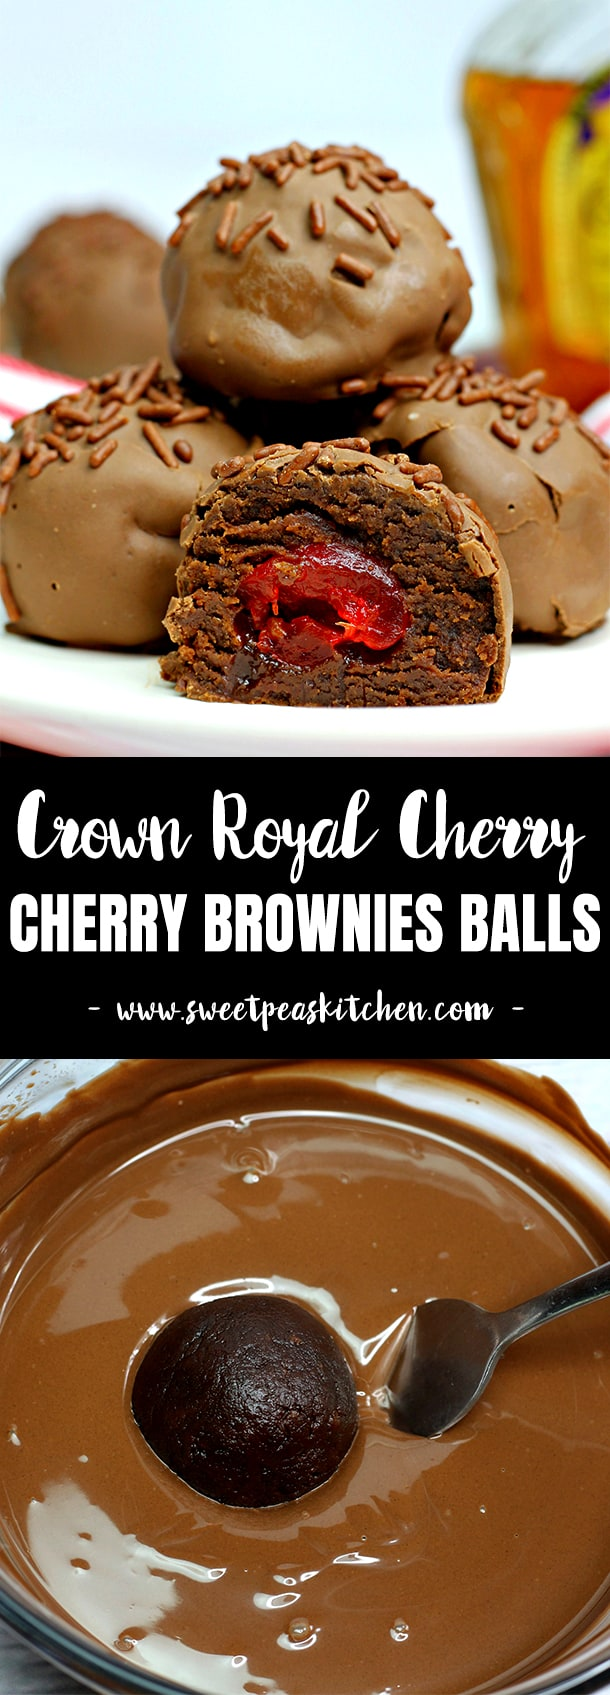 Crown Royal Cherry Brownies Balls